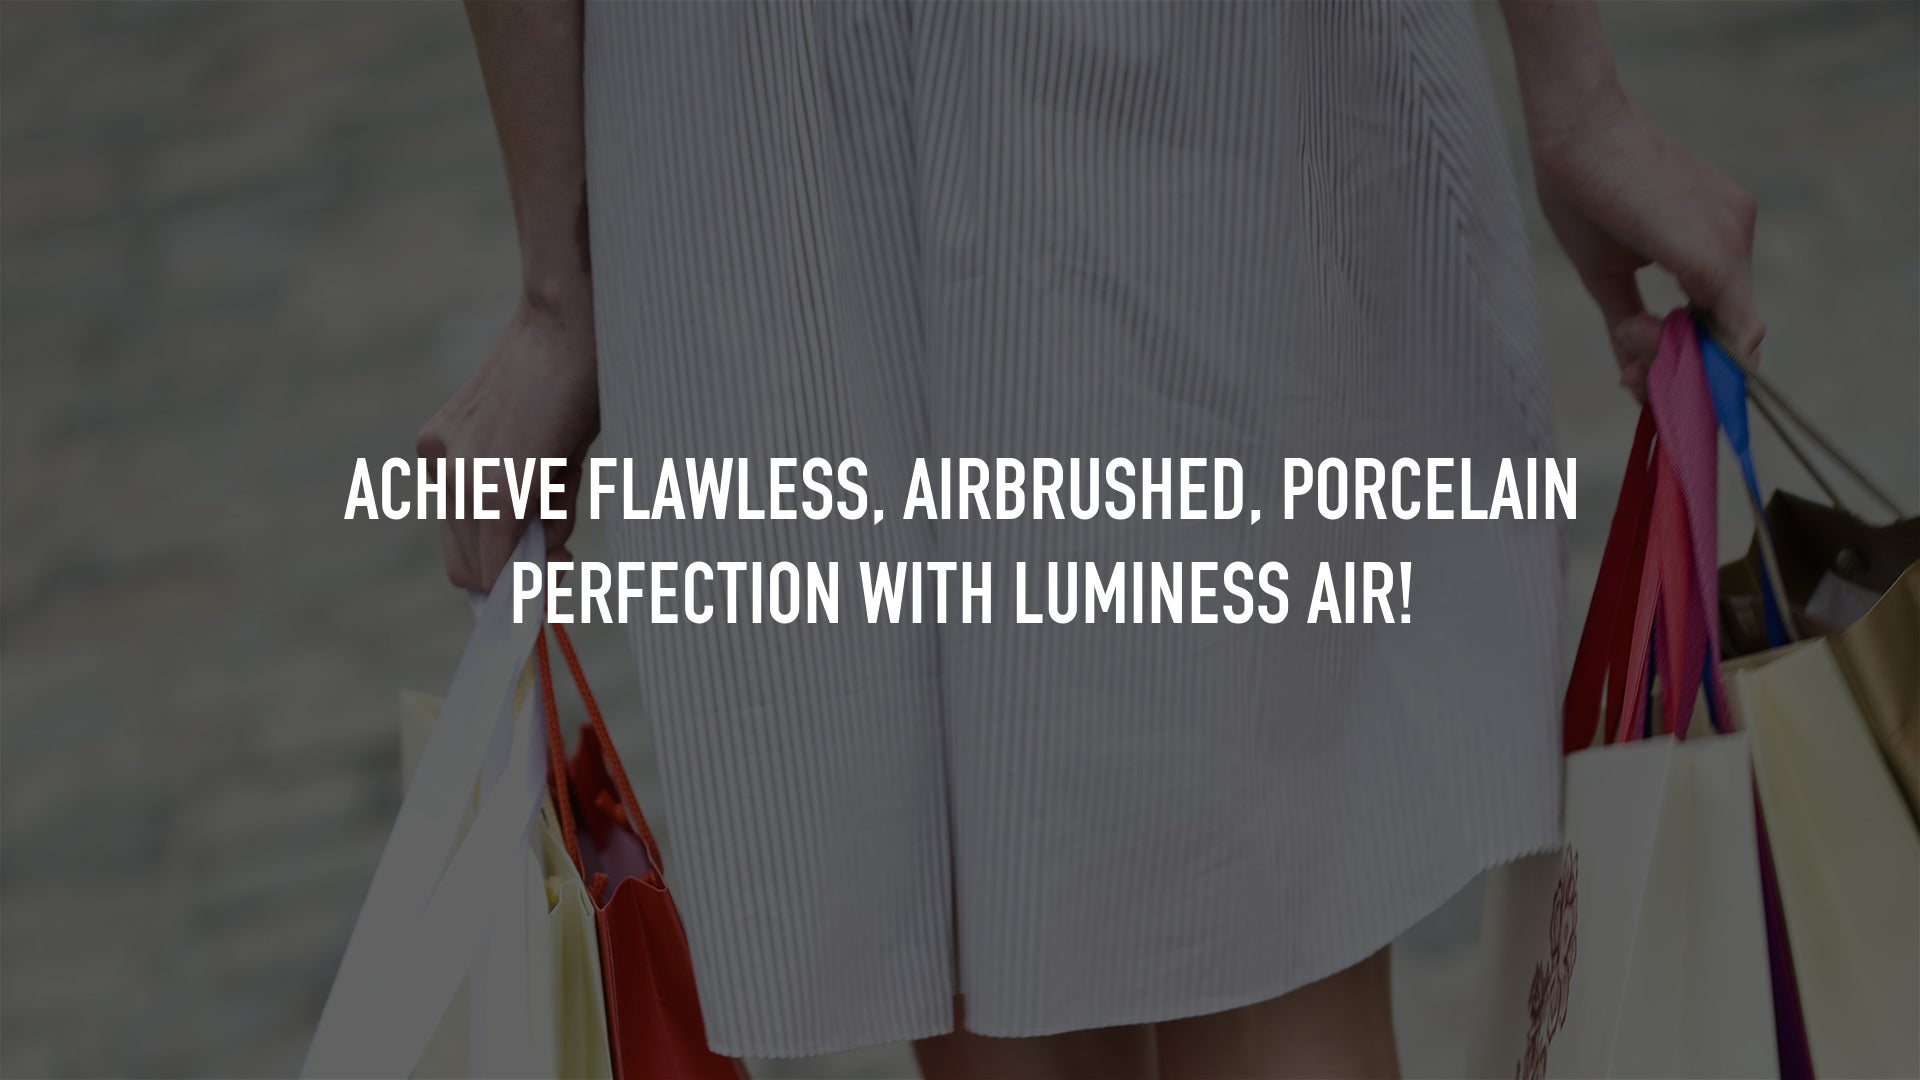 Achieve flawless, airbrushed, porcelain perfection with Luminess Air!